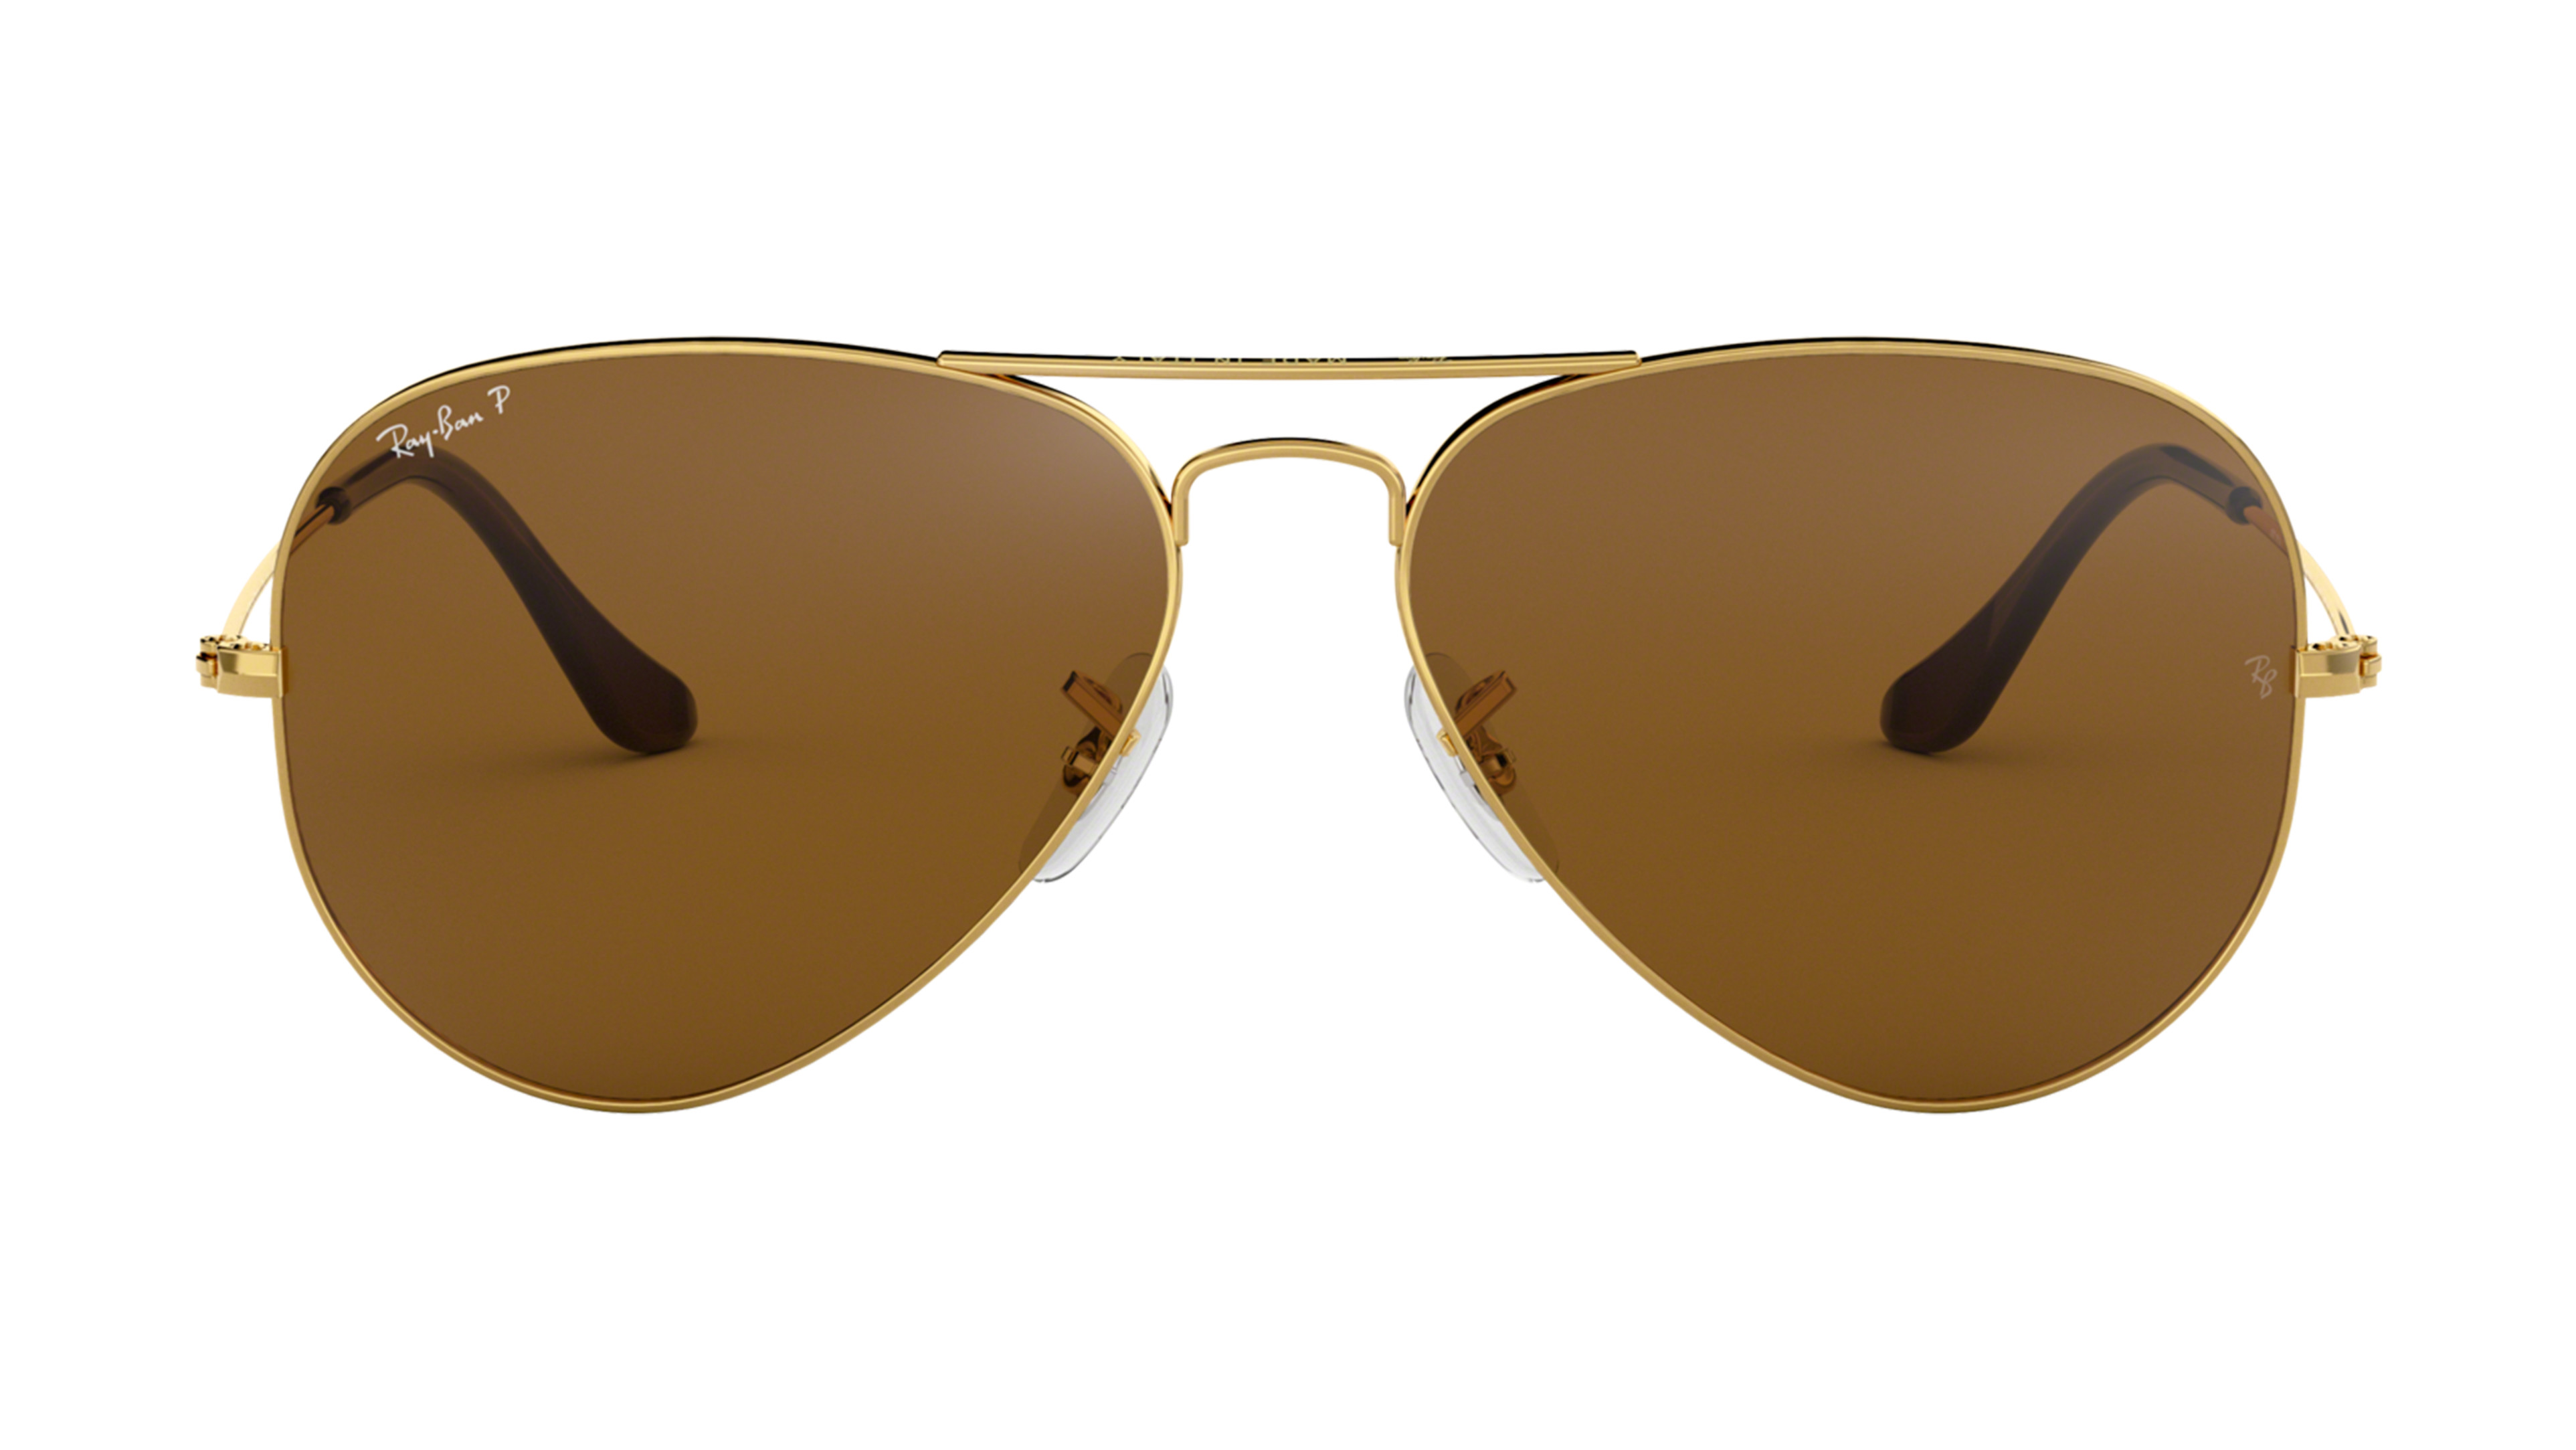 0805289346623-front-Ray-Ban-0RB3025-001-57